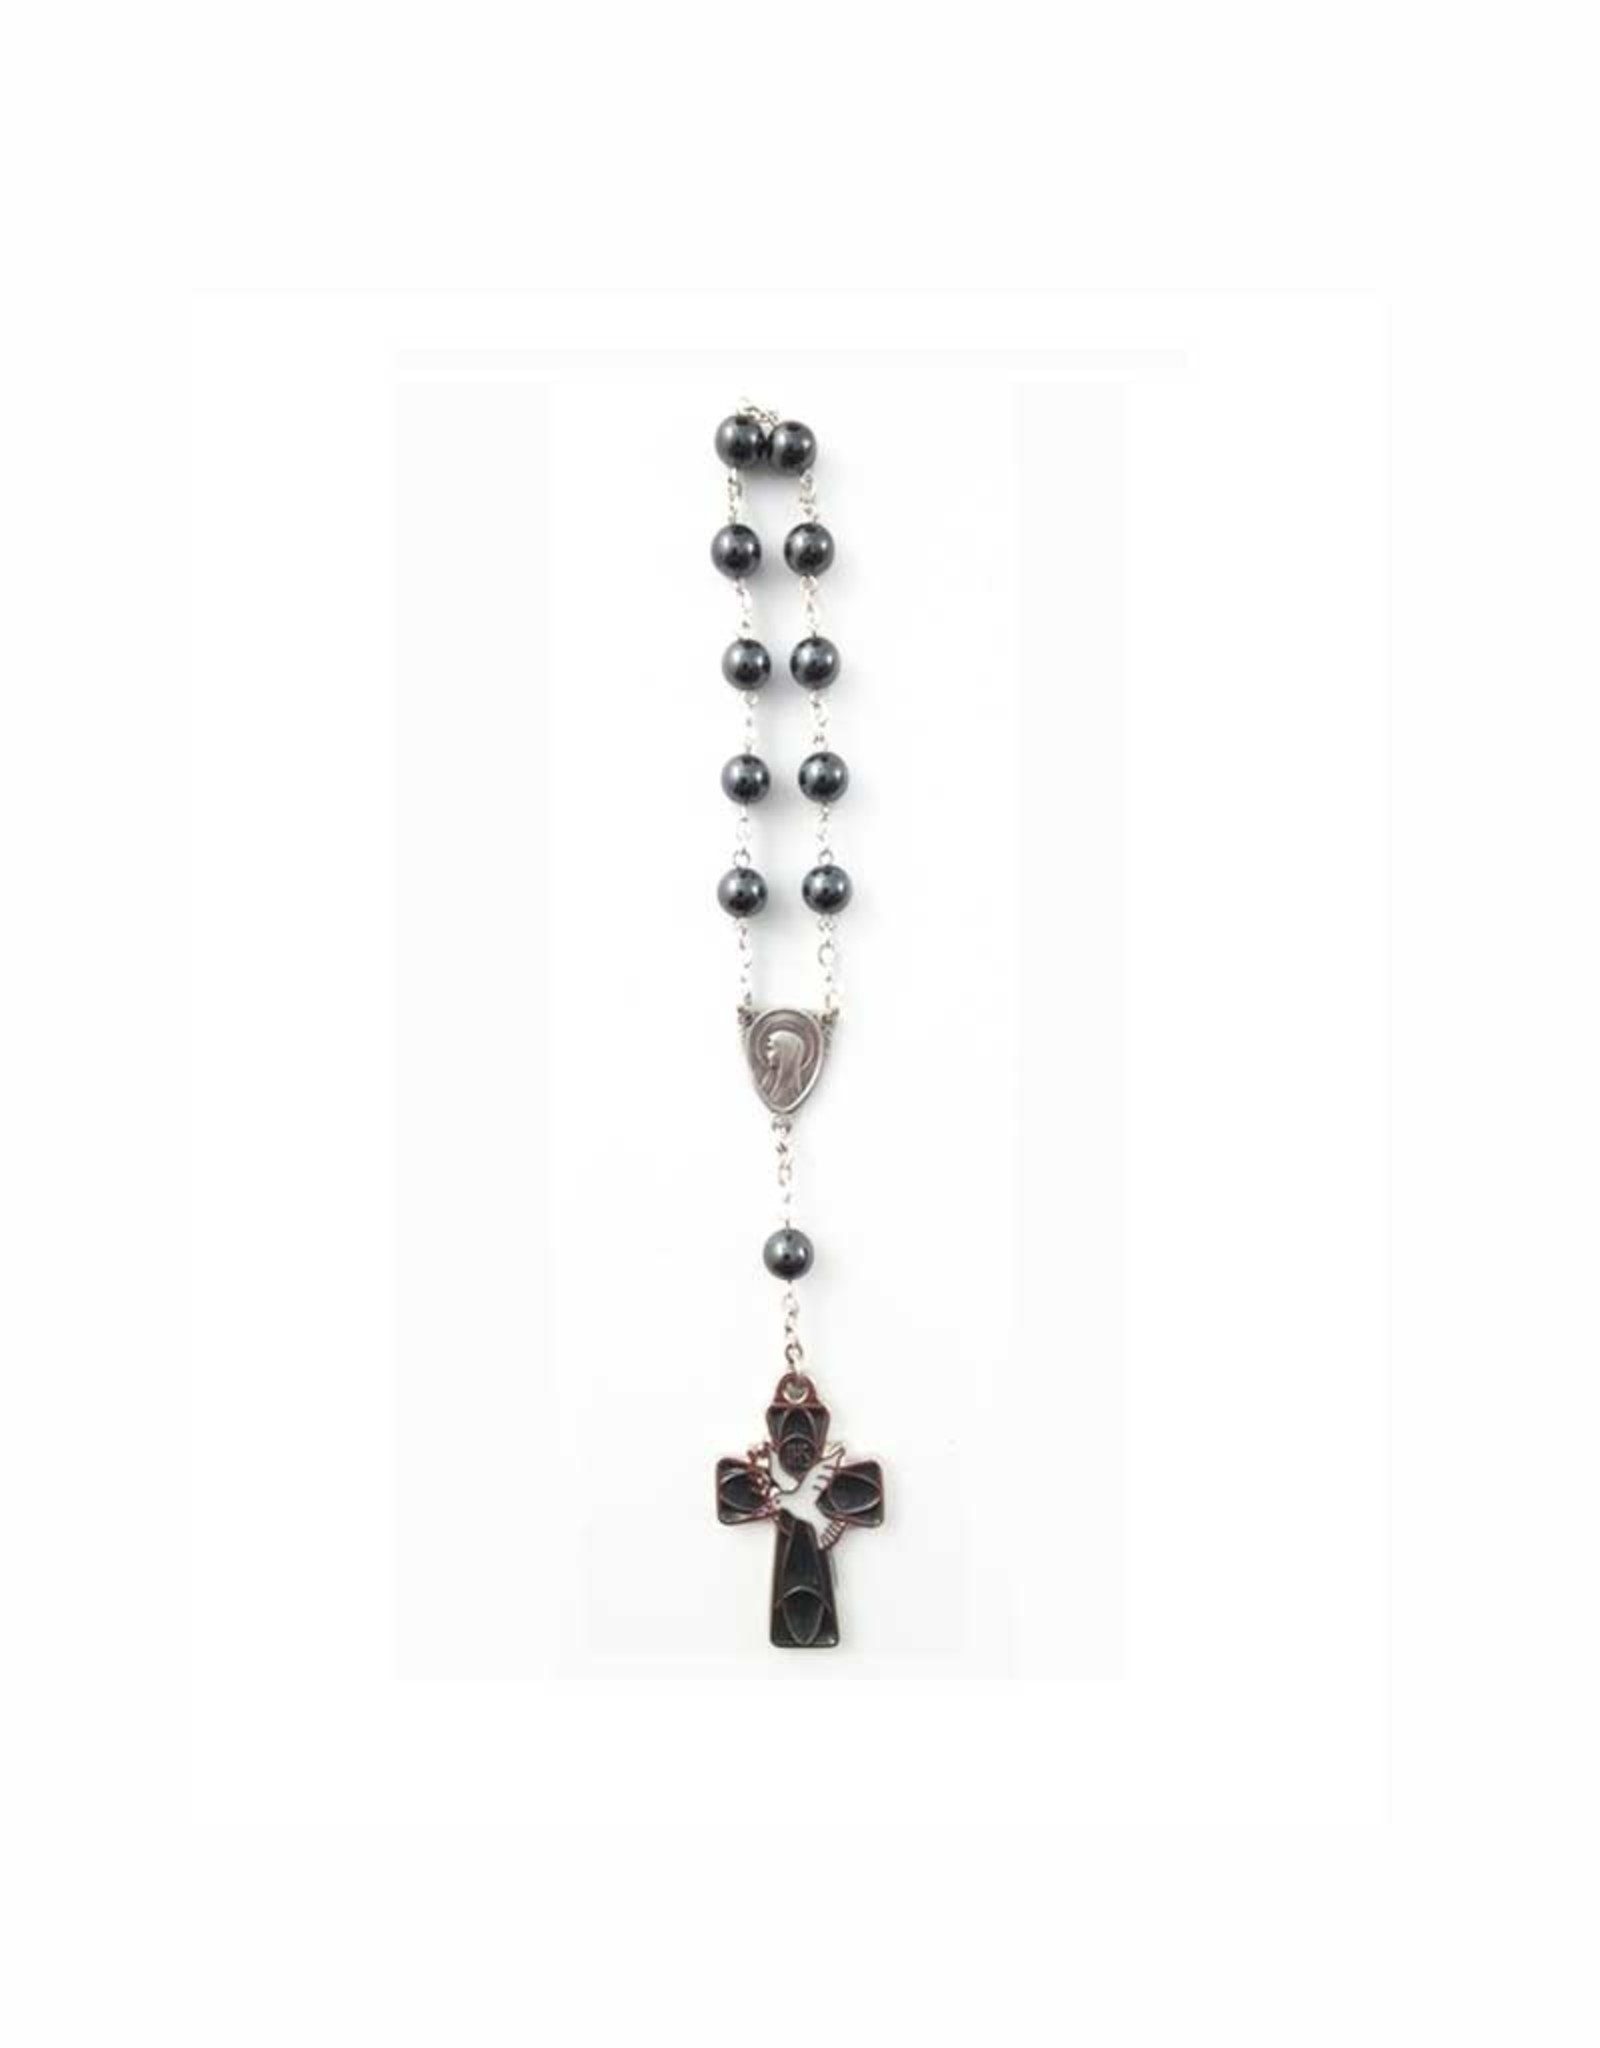 Hematite Virgin Mary decade rosary with dove